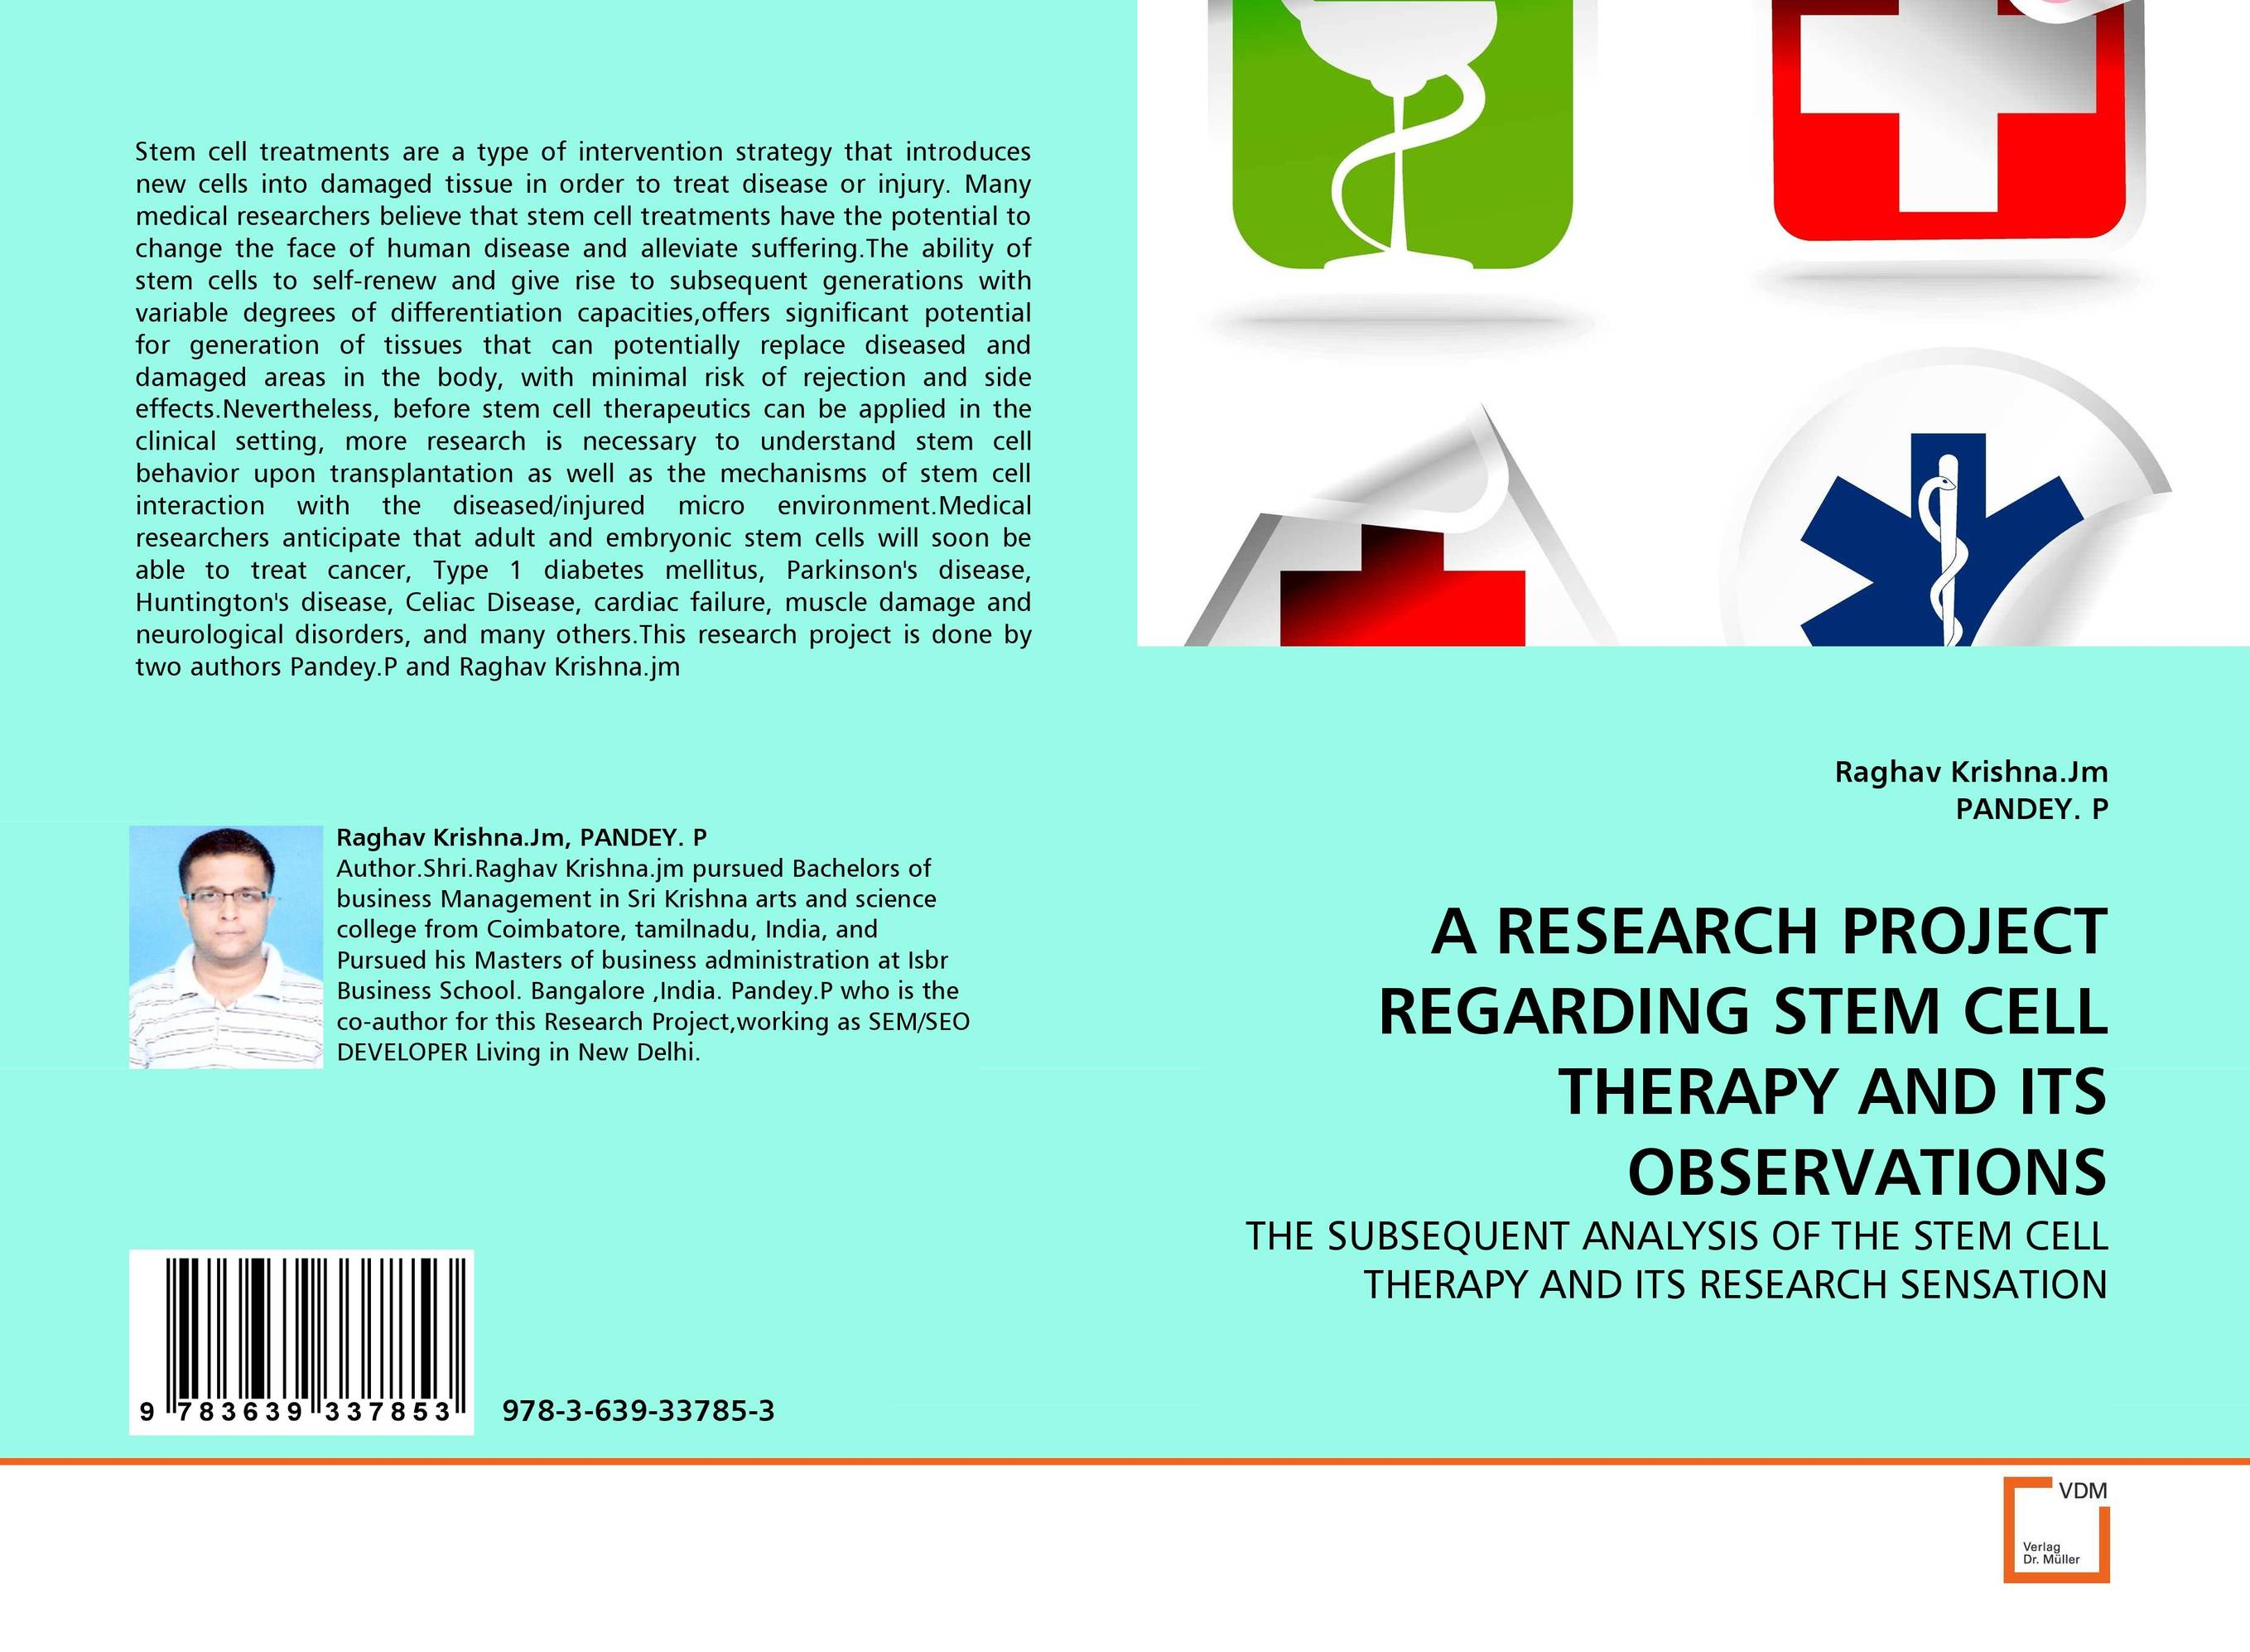 A RESEARCH PROJECT REGARDING STEM CELL THERAPY AND ITS OBSERVATIONS фен first fa 5662 2 красный